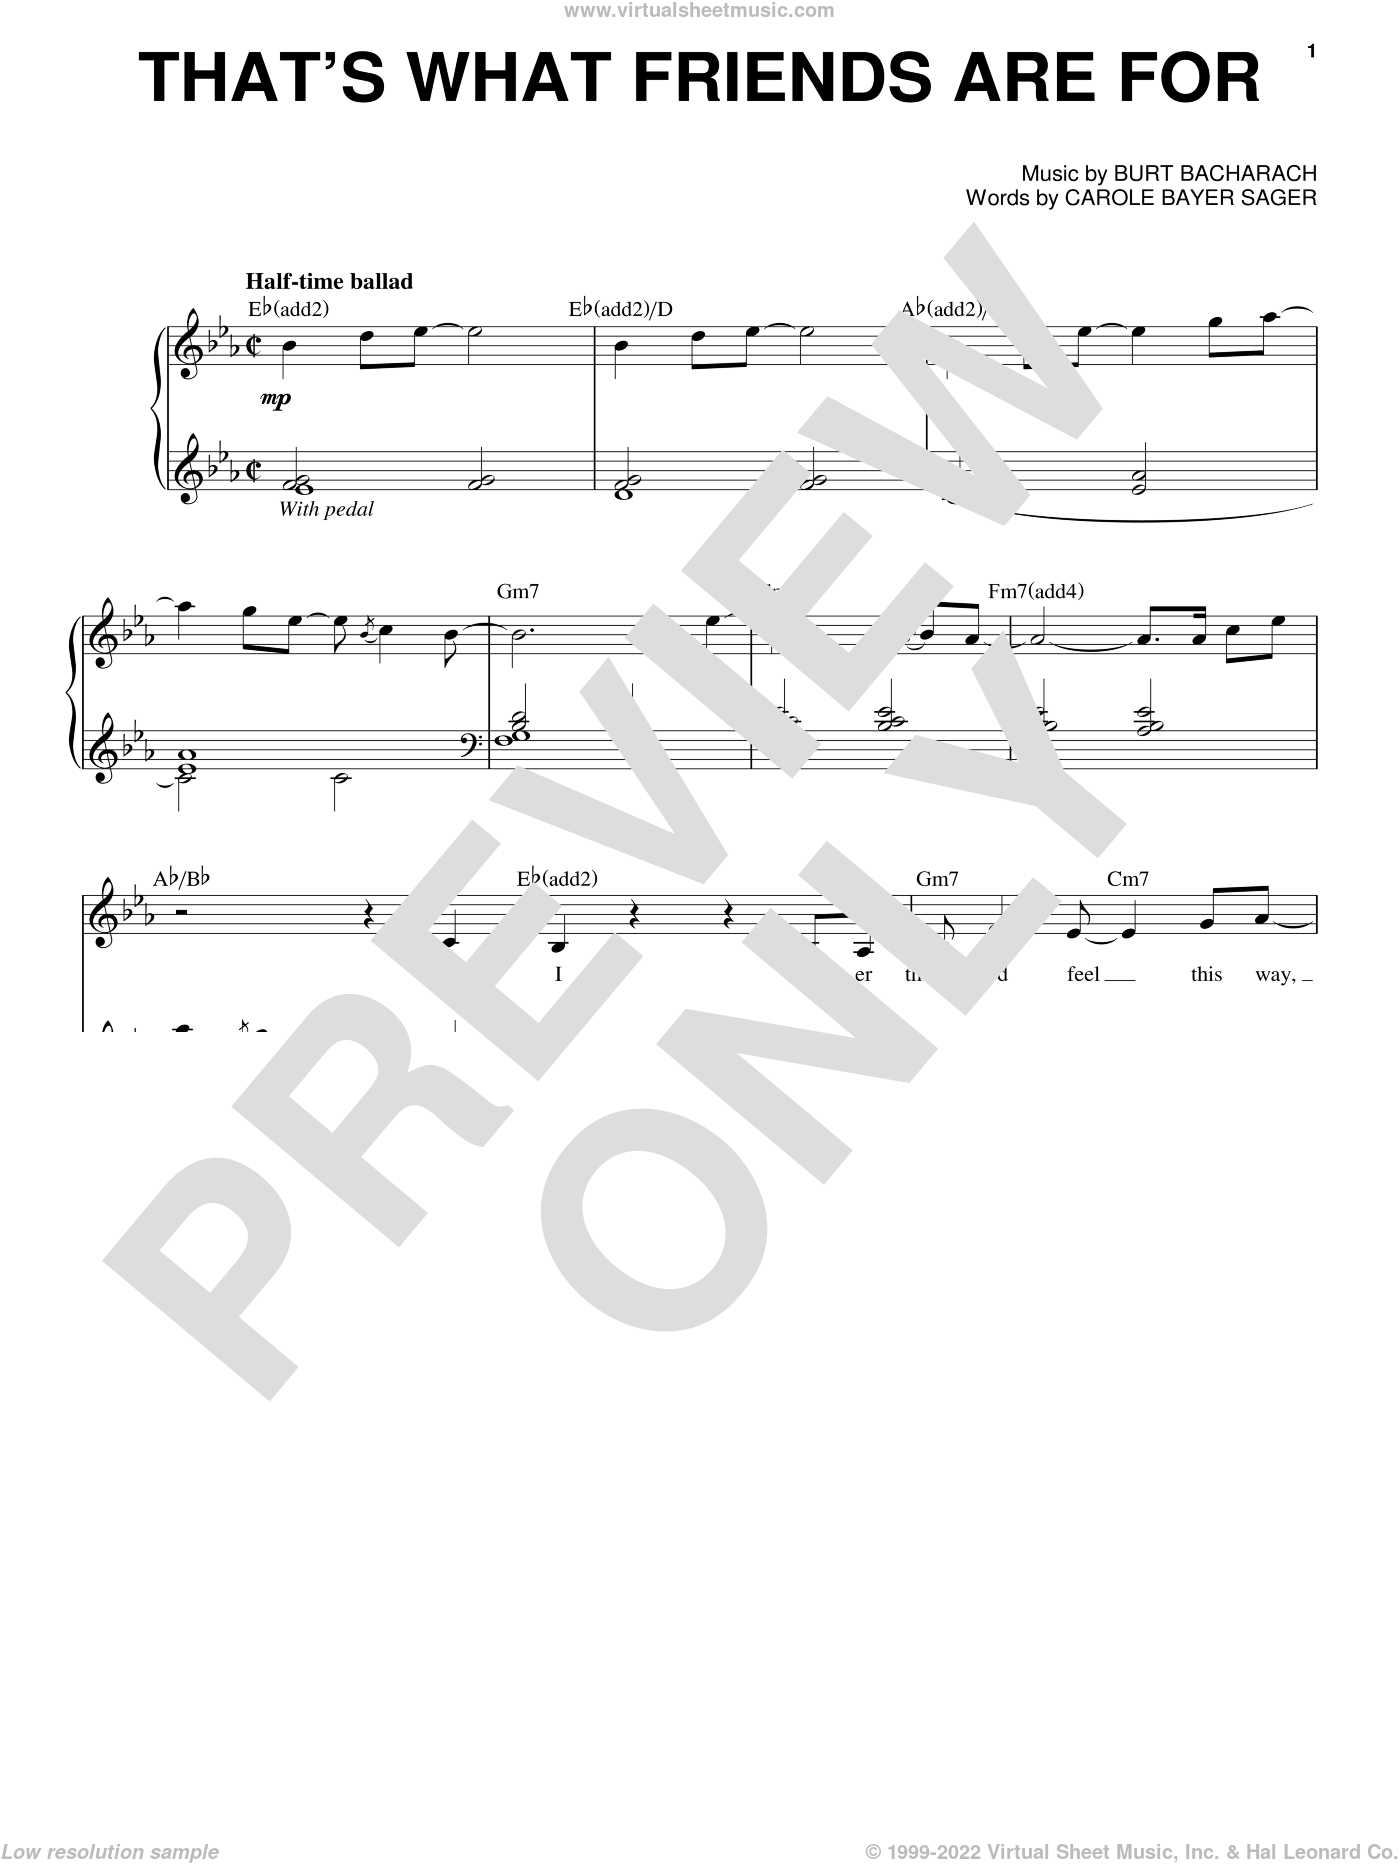 That's What Friends Are For sheet music for voice and piano by Dionne & Friends, Burt Bacharach and Carole Bayer Sager, intermediate skill level